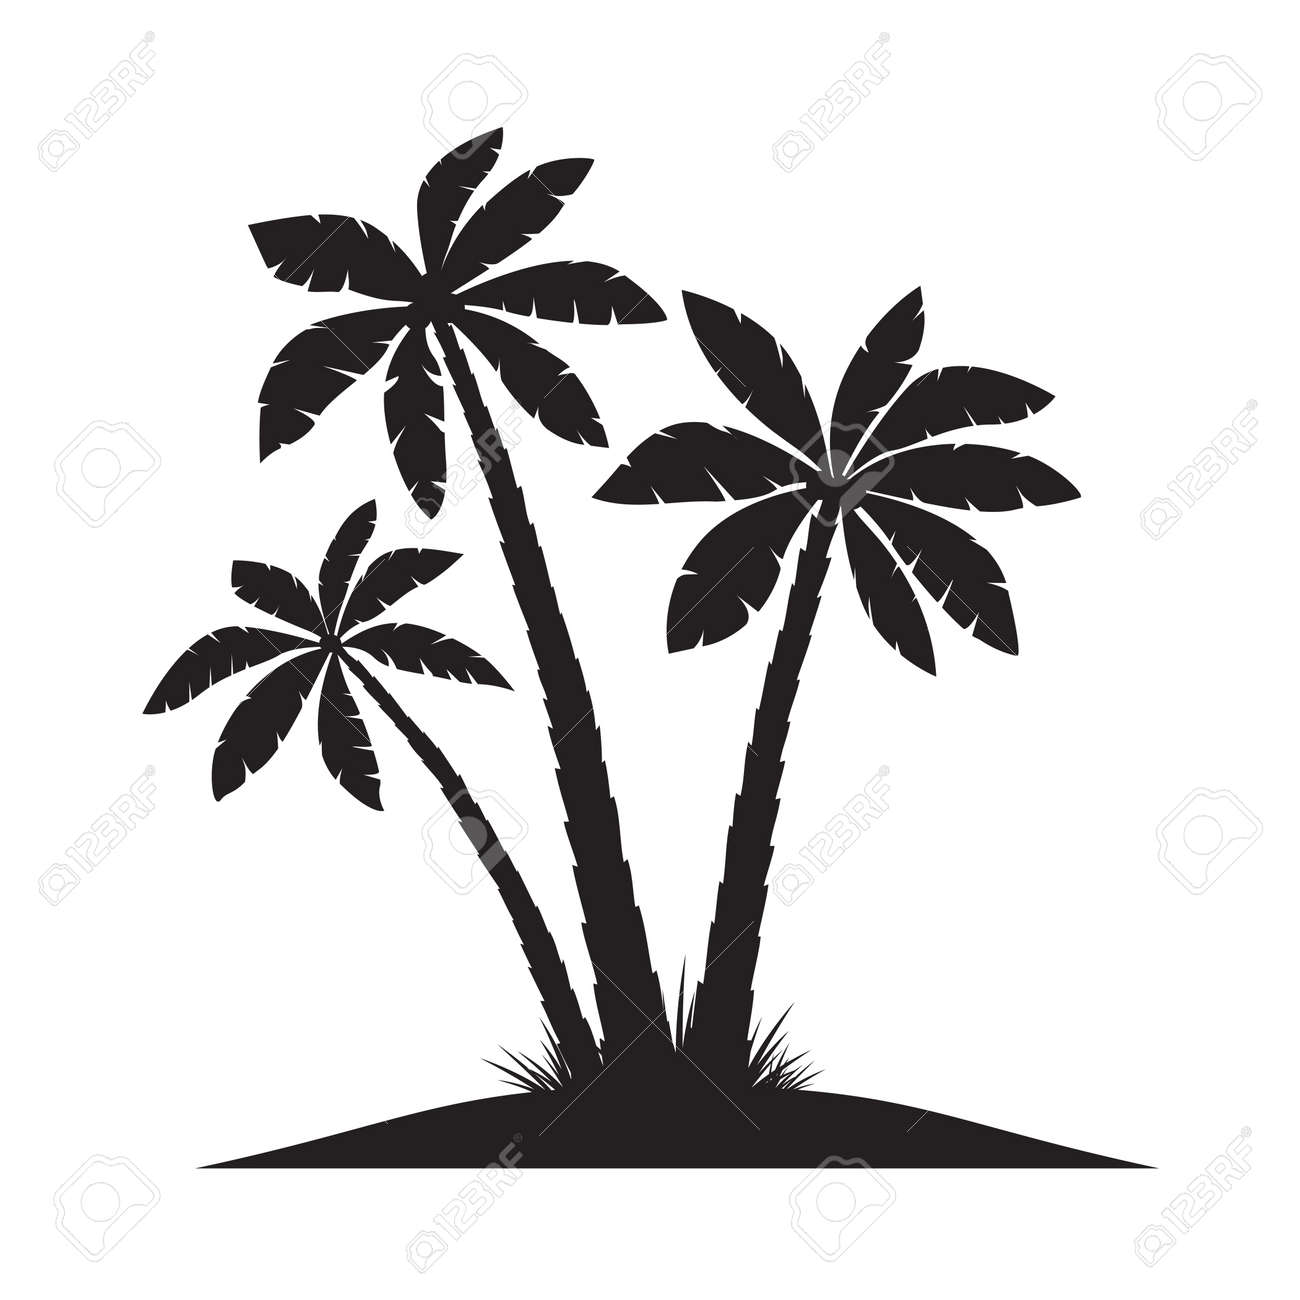 black vector palm trees royalty free cliparts vectors and stock rh 123rf com vector palm trees illustrator free vector palm trees